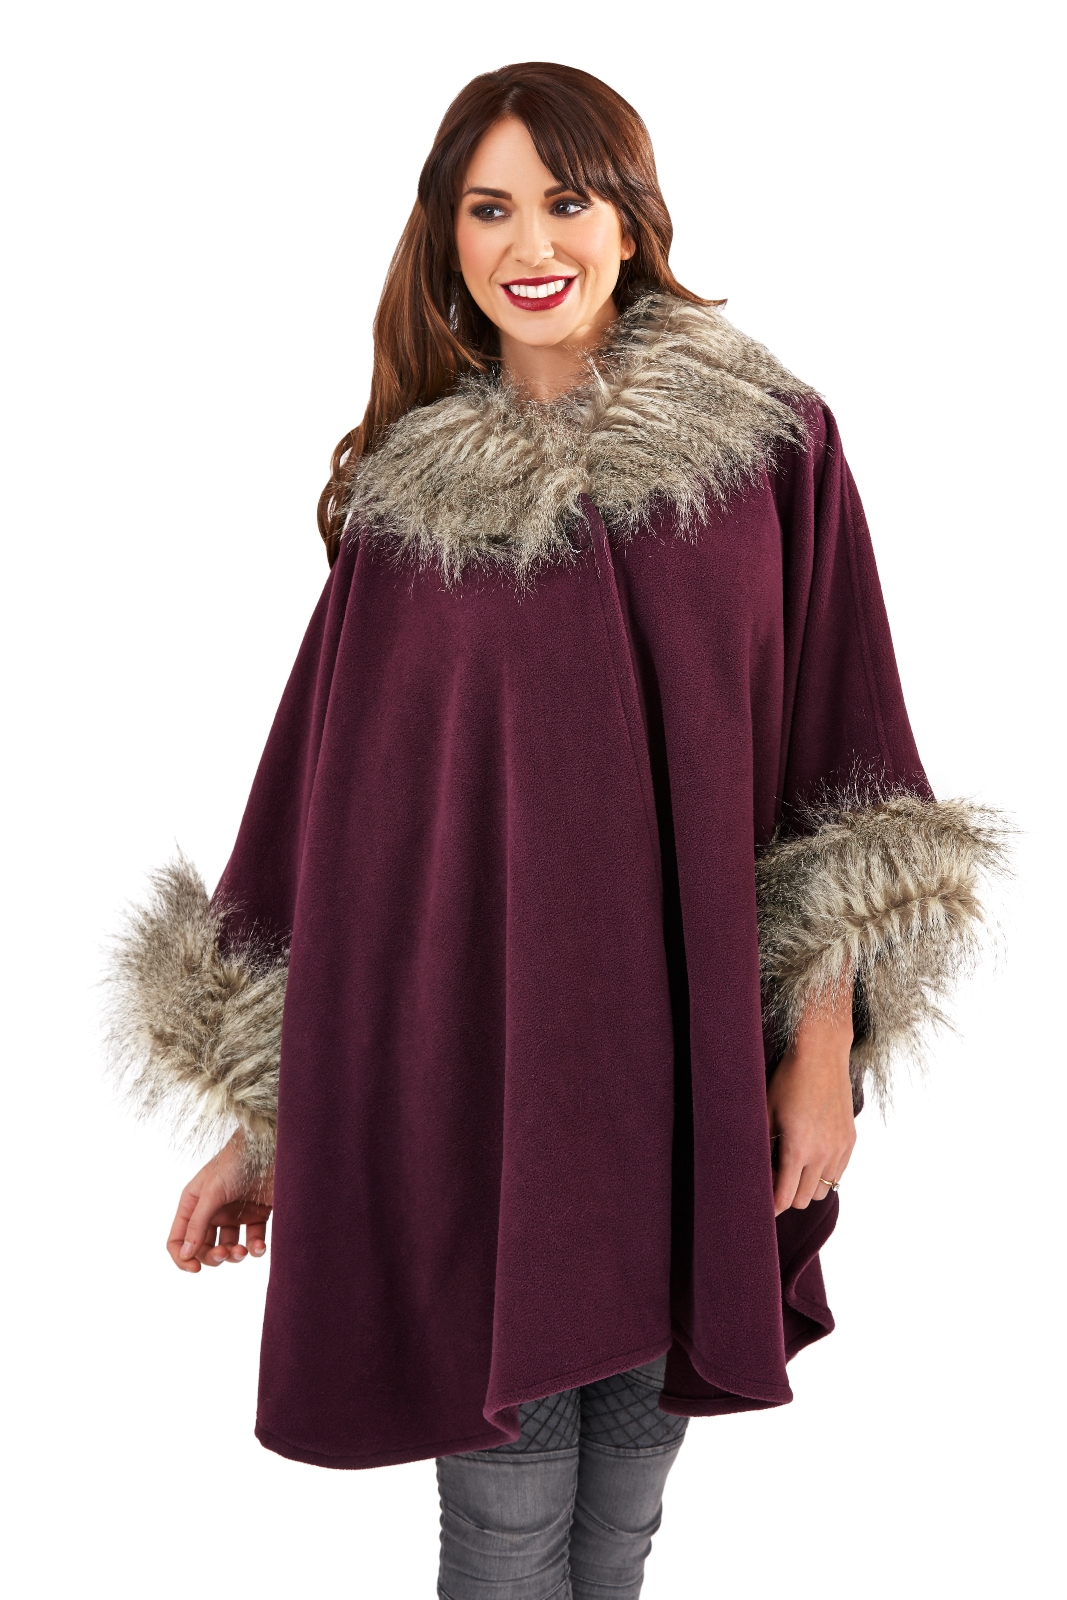 2019 year for women- Fur wraps and shawls for women